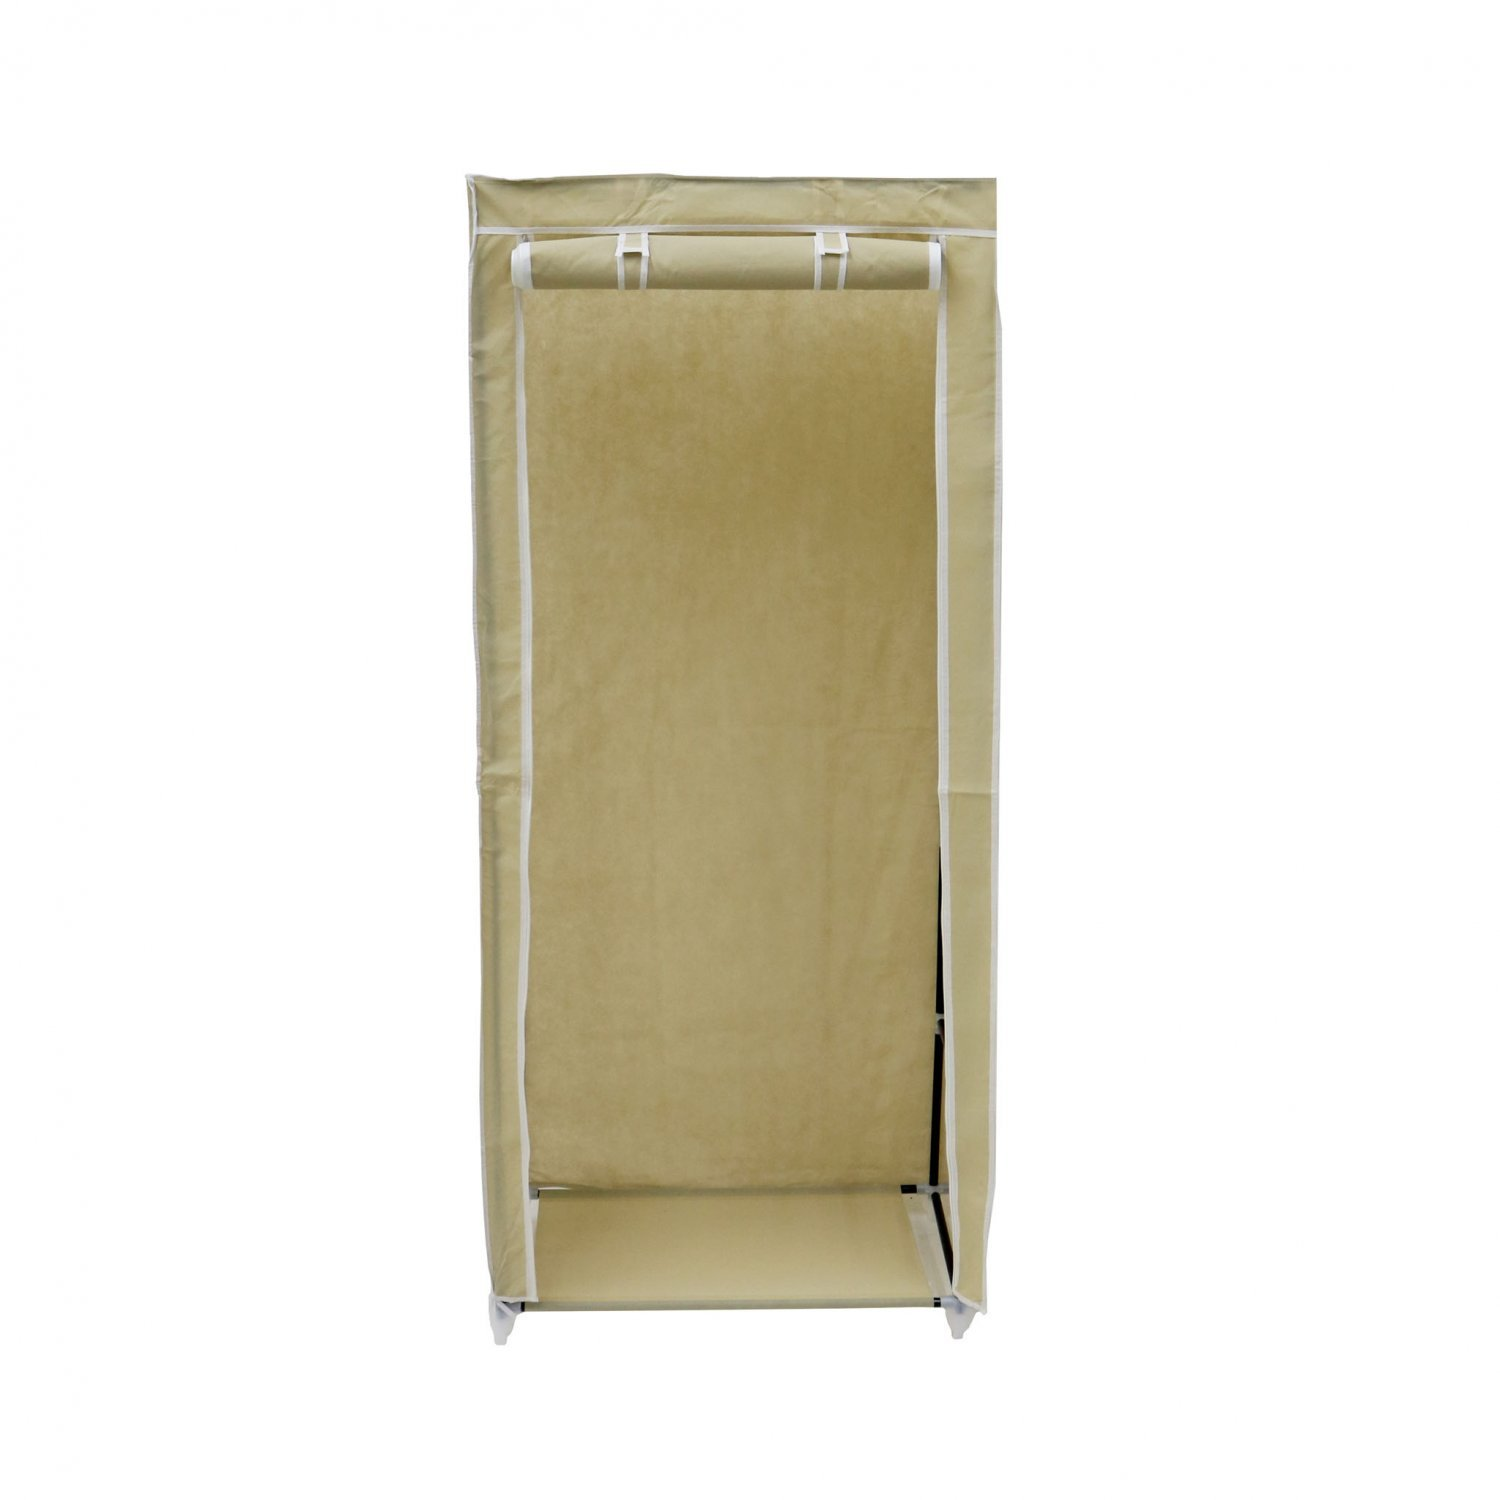 Double Cream Canvas Wardrobe Clothes Rail Hanging Storage Closet 163 19 99 Oypla Stocking The